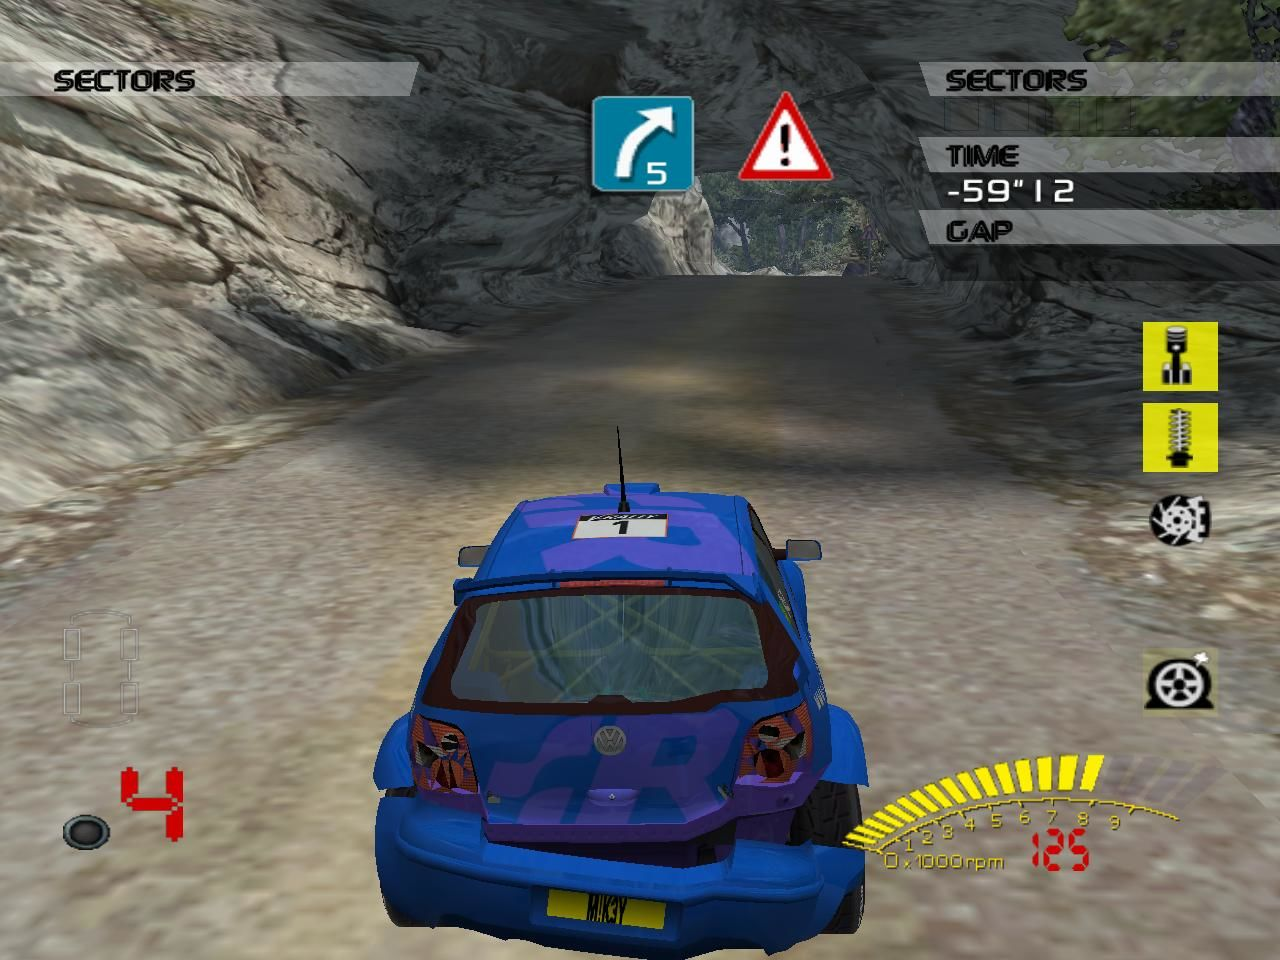 http://www.mobygames.com/images/shots/l/421738-v-rally-3-windows-screenshot-a-tunnel-s.jpg